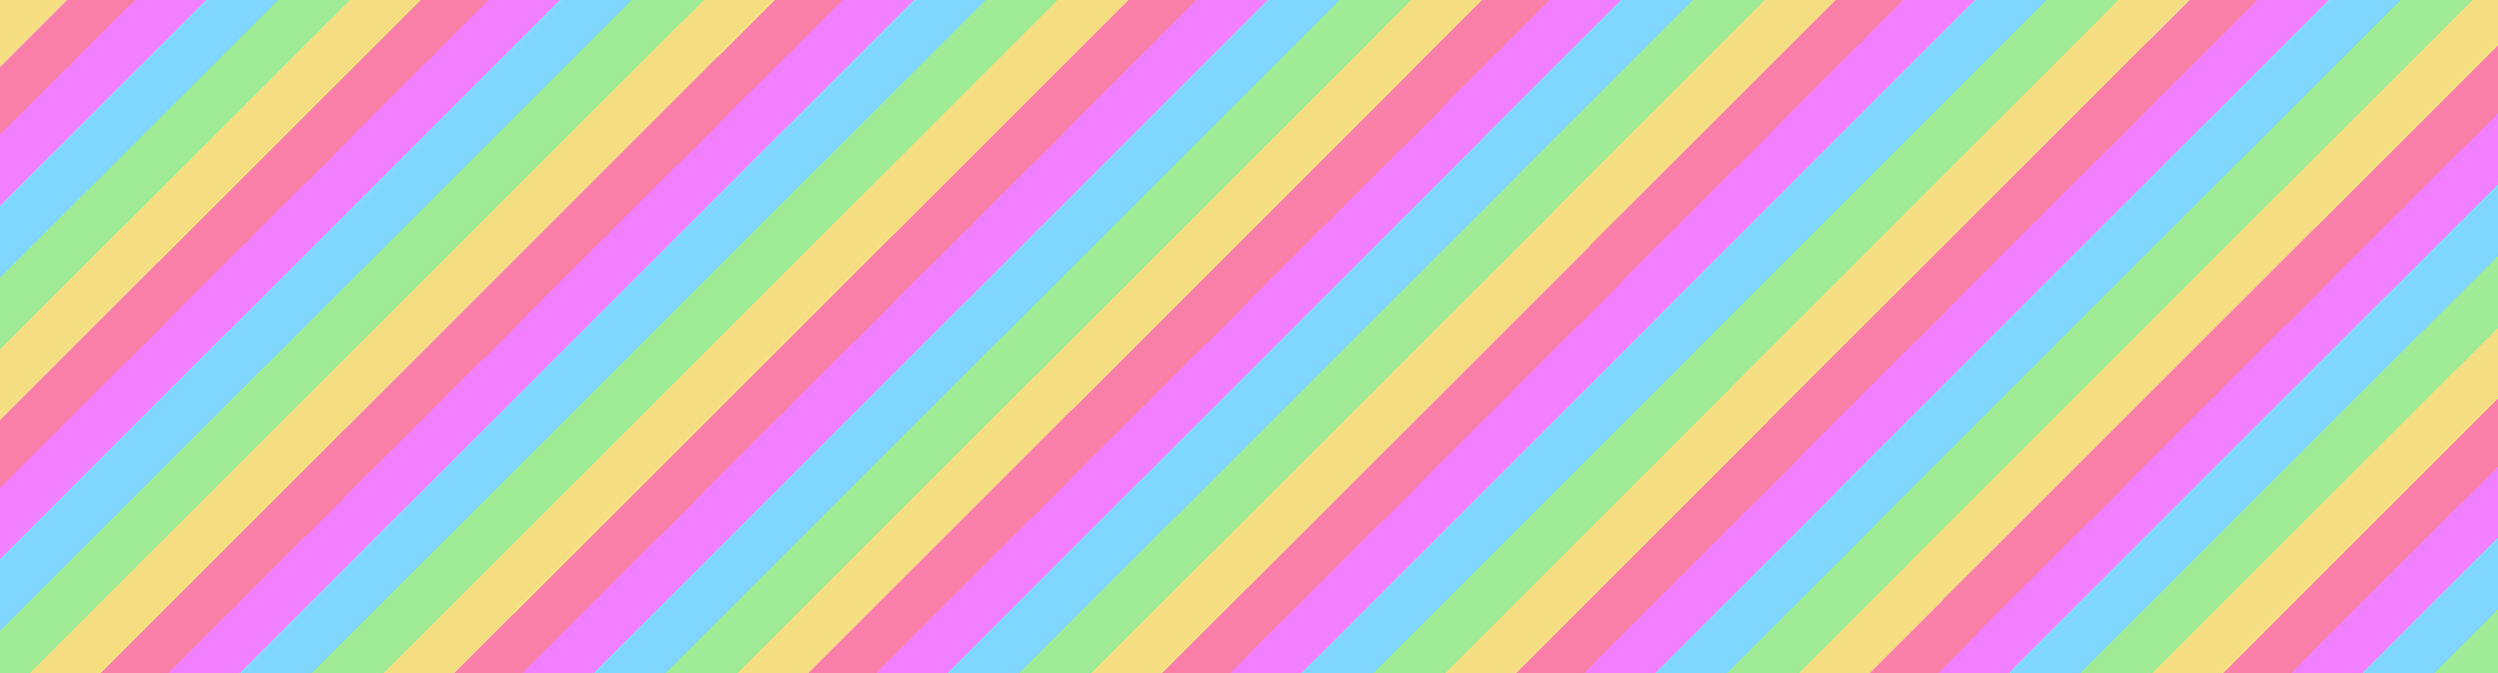 A rainbow striped image